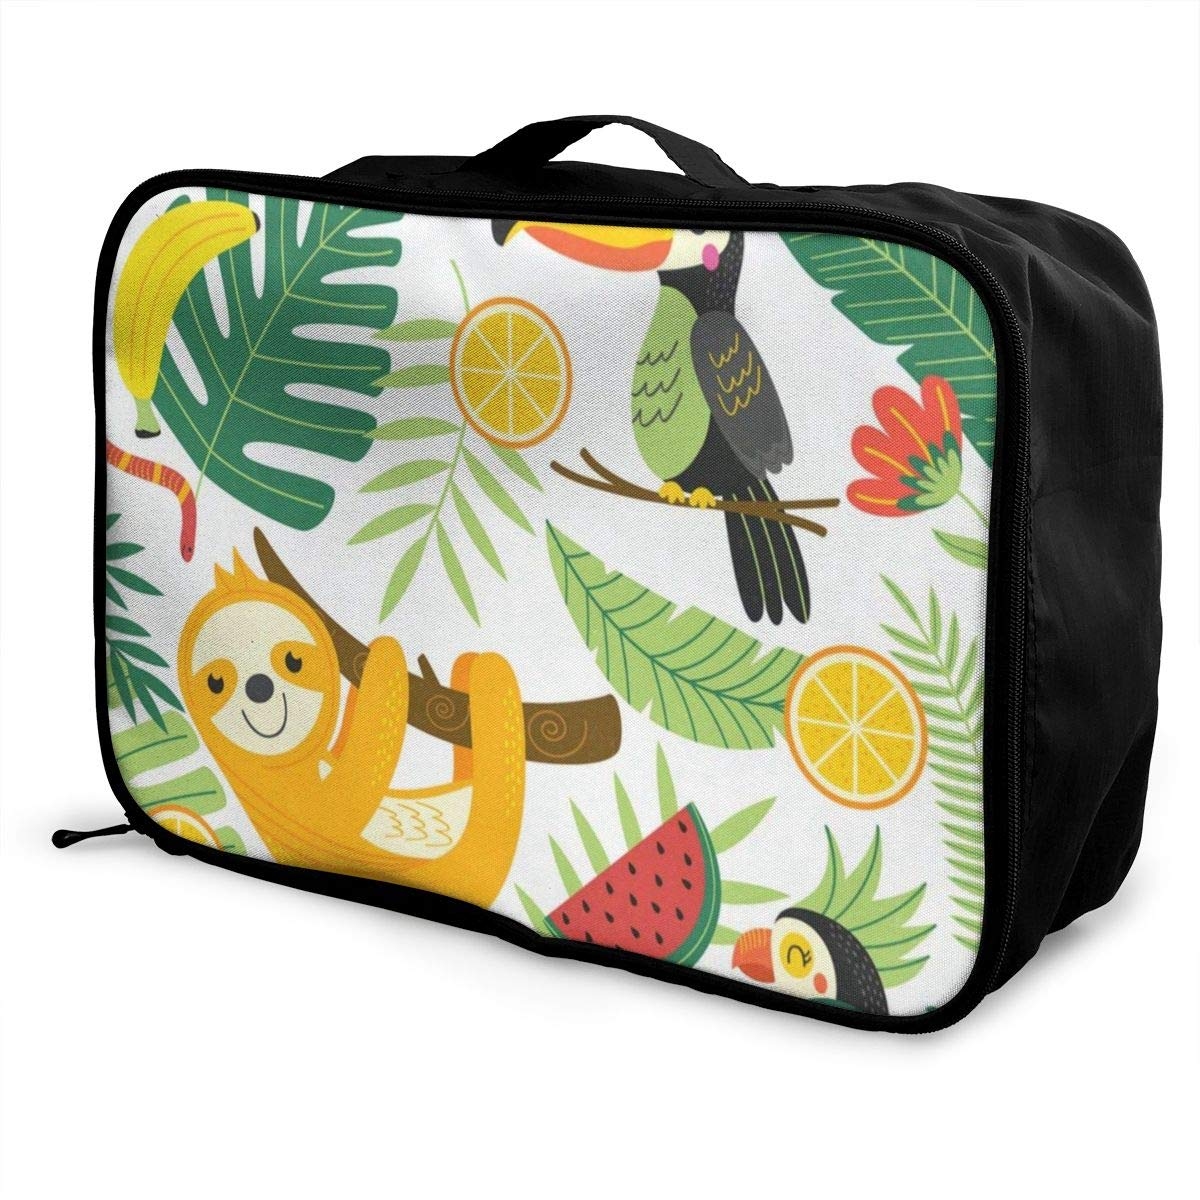 Travel Bags Tropical Palm Leaf Lead Red Floral Flower Portable Duffel Special Trolley Handle Luggage Bag